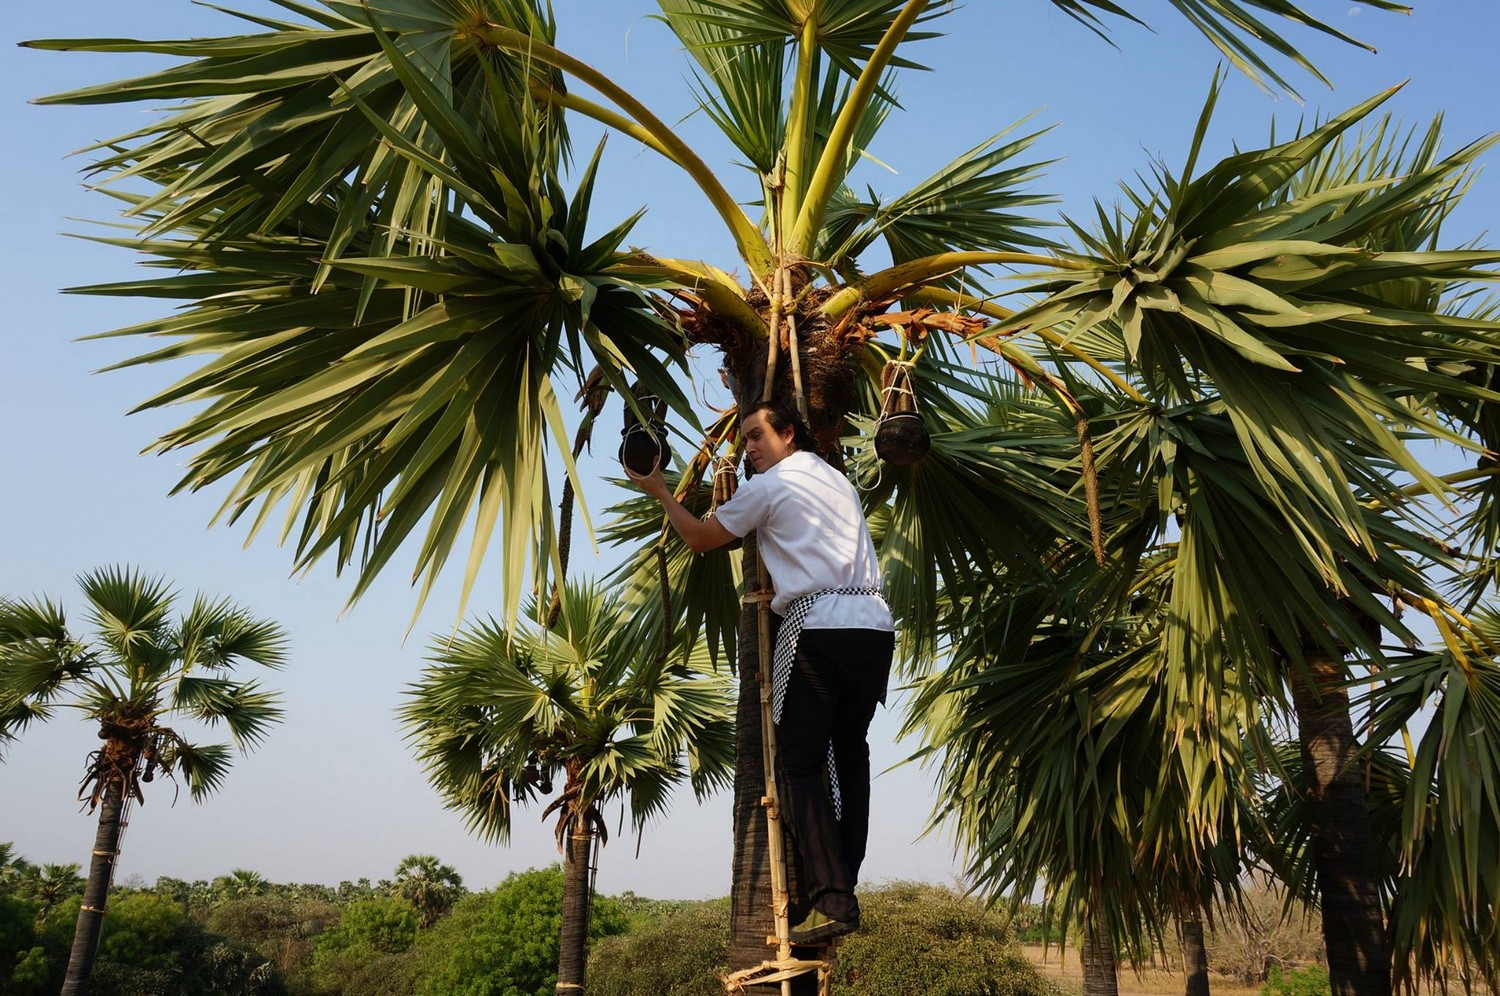 Collecting the sweet toddy palm nectar. A key ingredient to many drinks and dishes